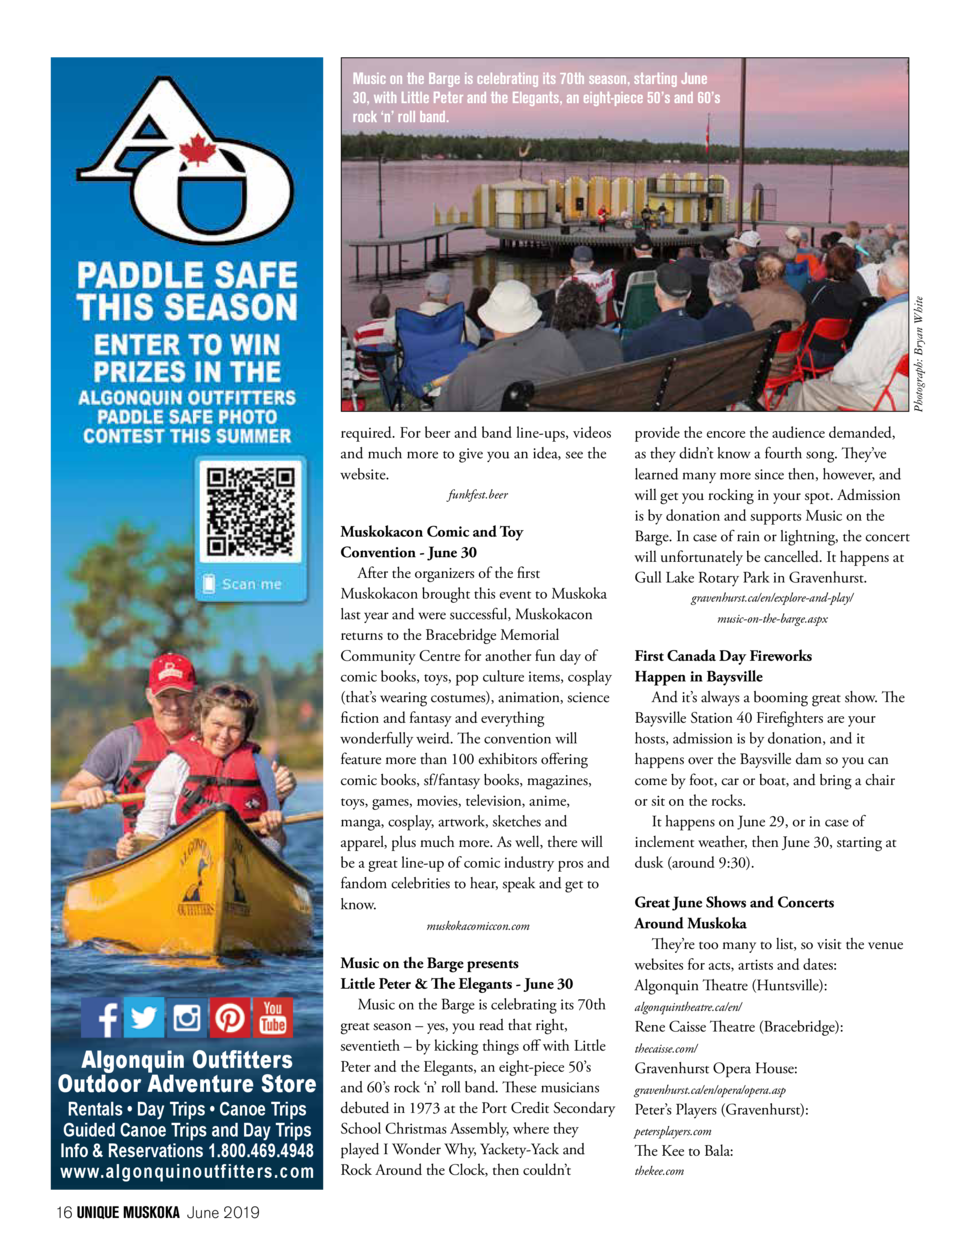 Photograph  Bryan White   Music on the Barge is celebrating its 70th season, starting June 30, with Little Peter and the E...